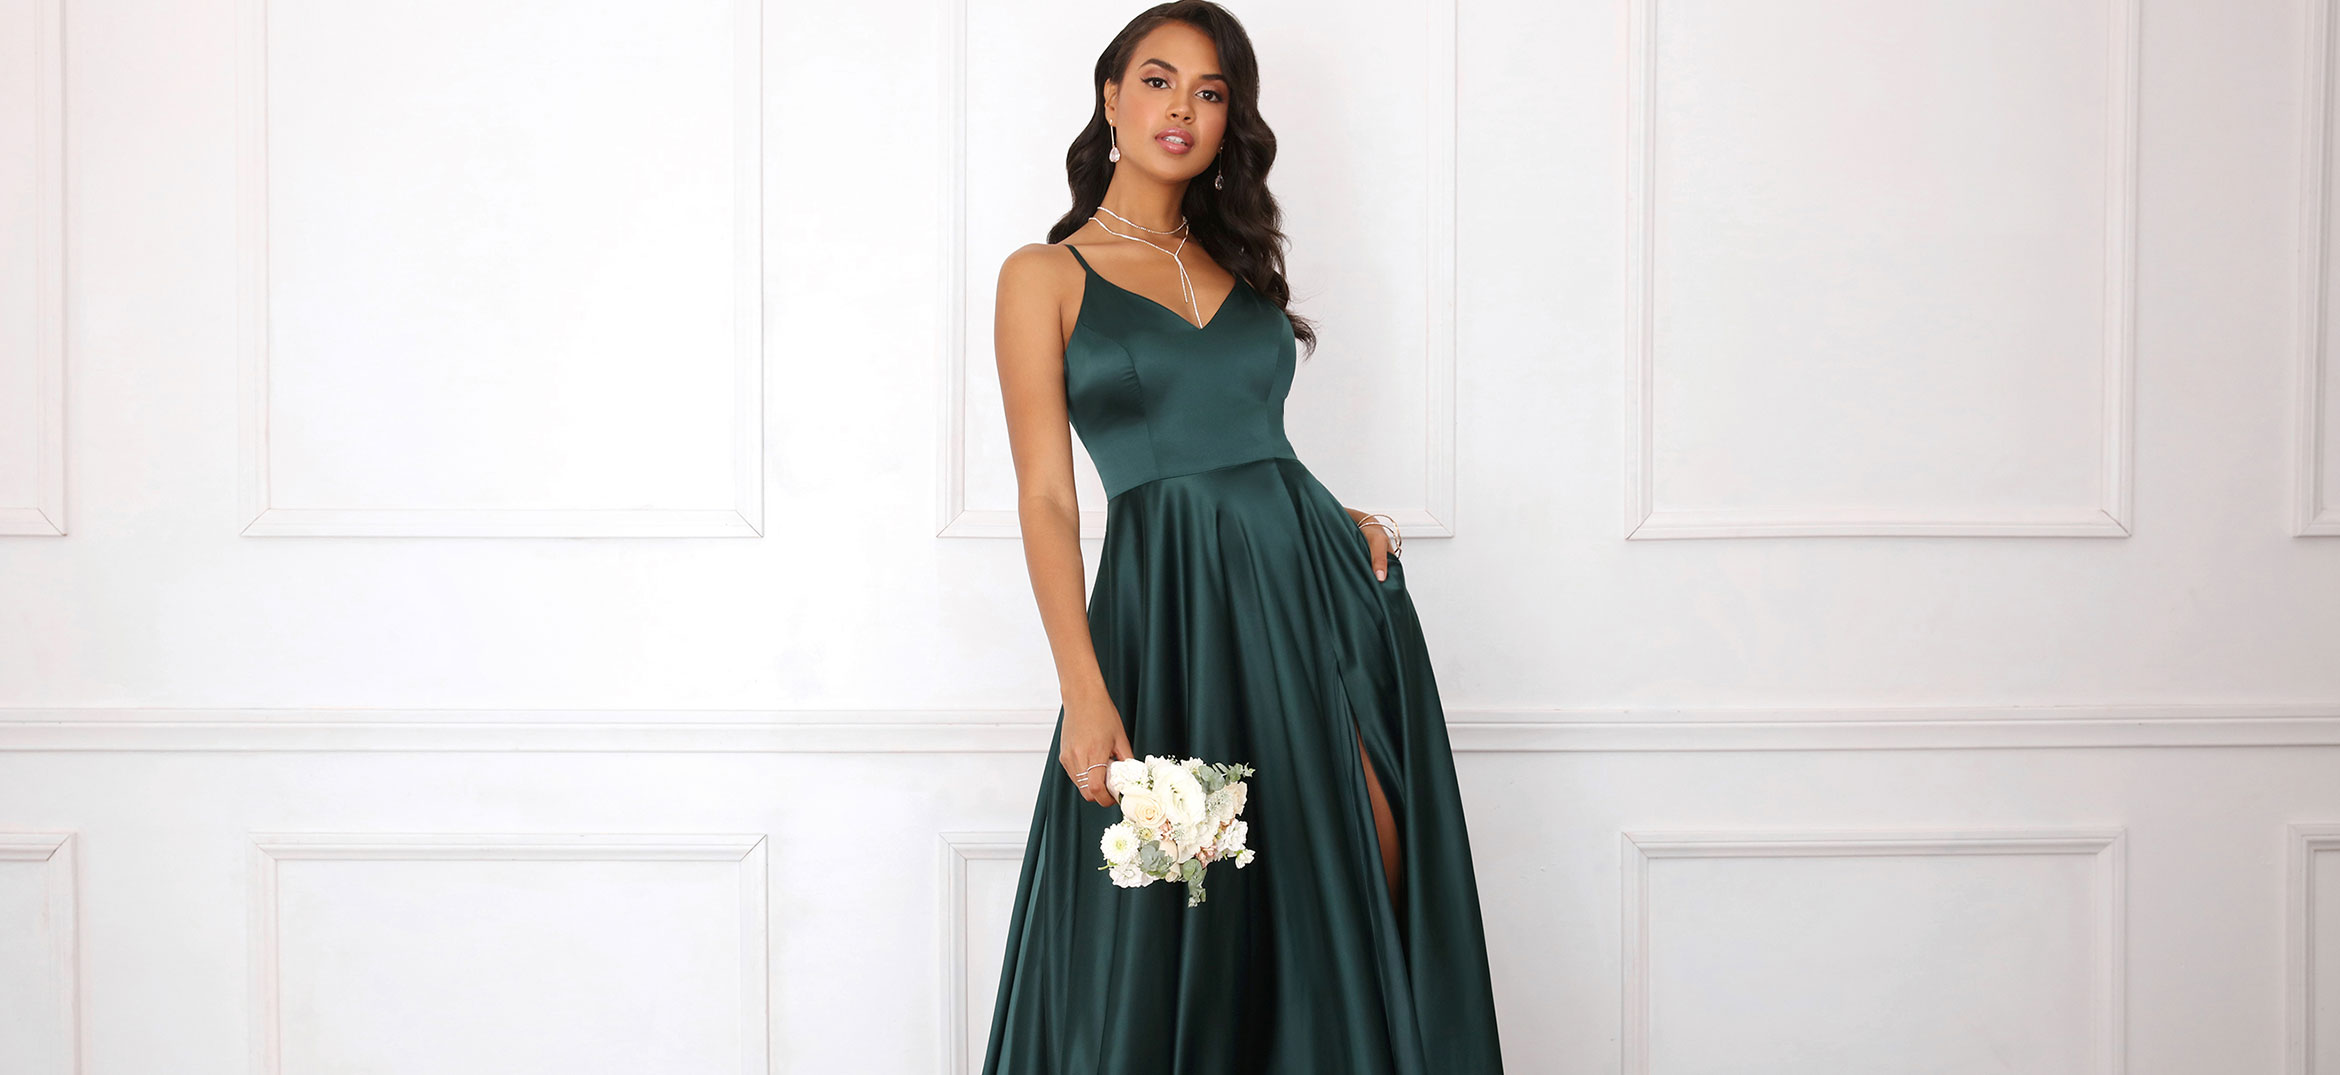 What To Wear To An Outdoor Fall Wedding Windsor,Summer Cocktail Dresses For Weddings Plus Size